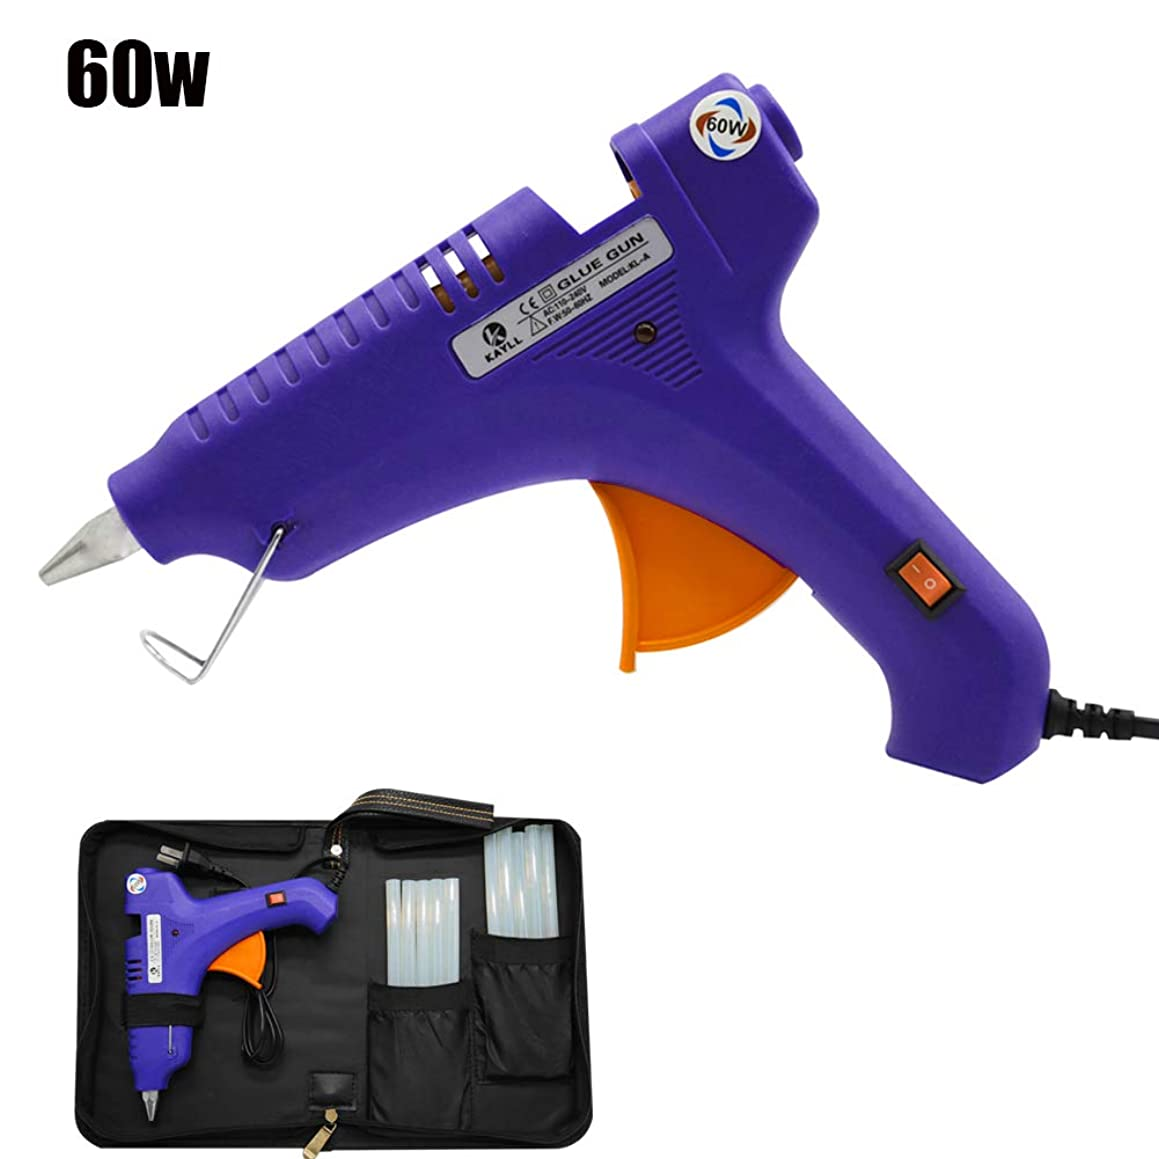 BMIETE 60W Hot Melt Glue Gun with 10pcs Glue Sticks Strong Adhesive,Storage Box Included for Arts Crafts School Home Repair and Sealing DIY